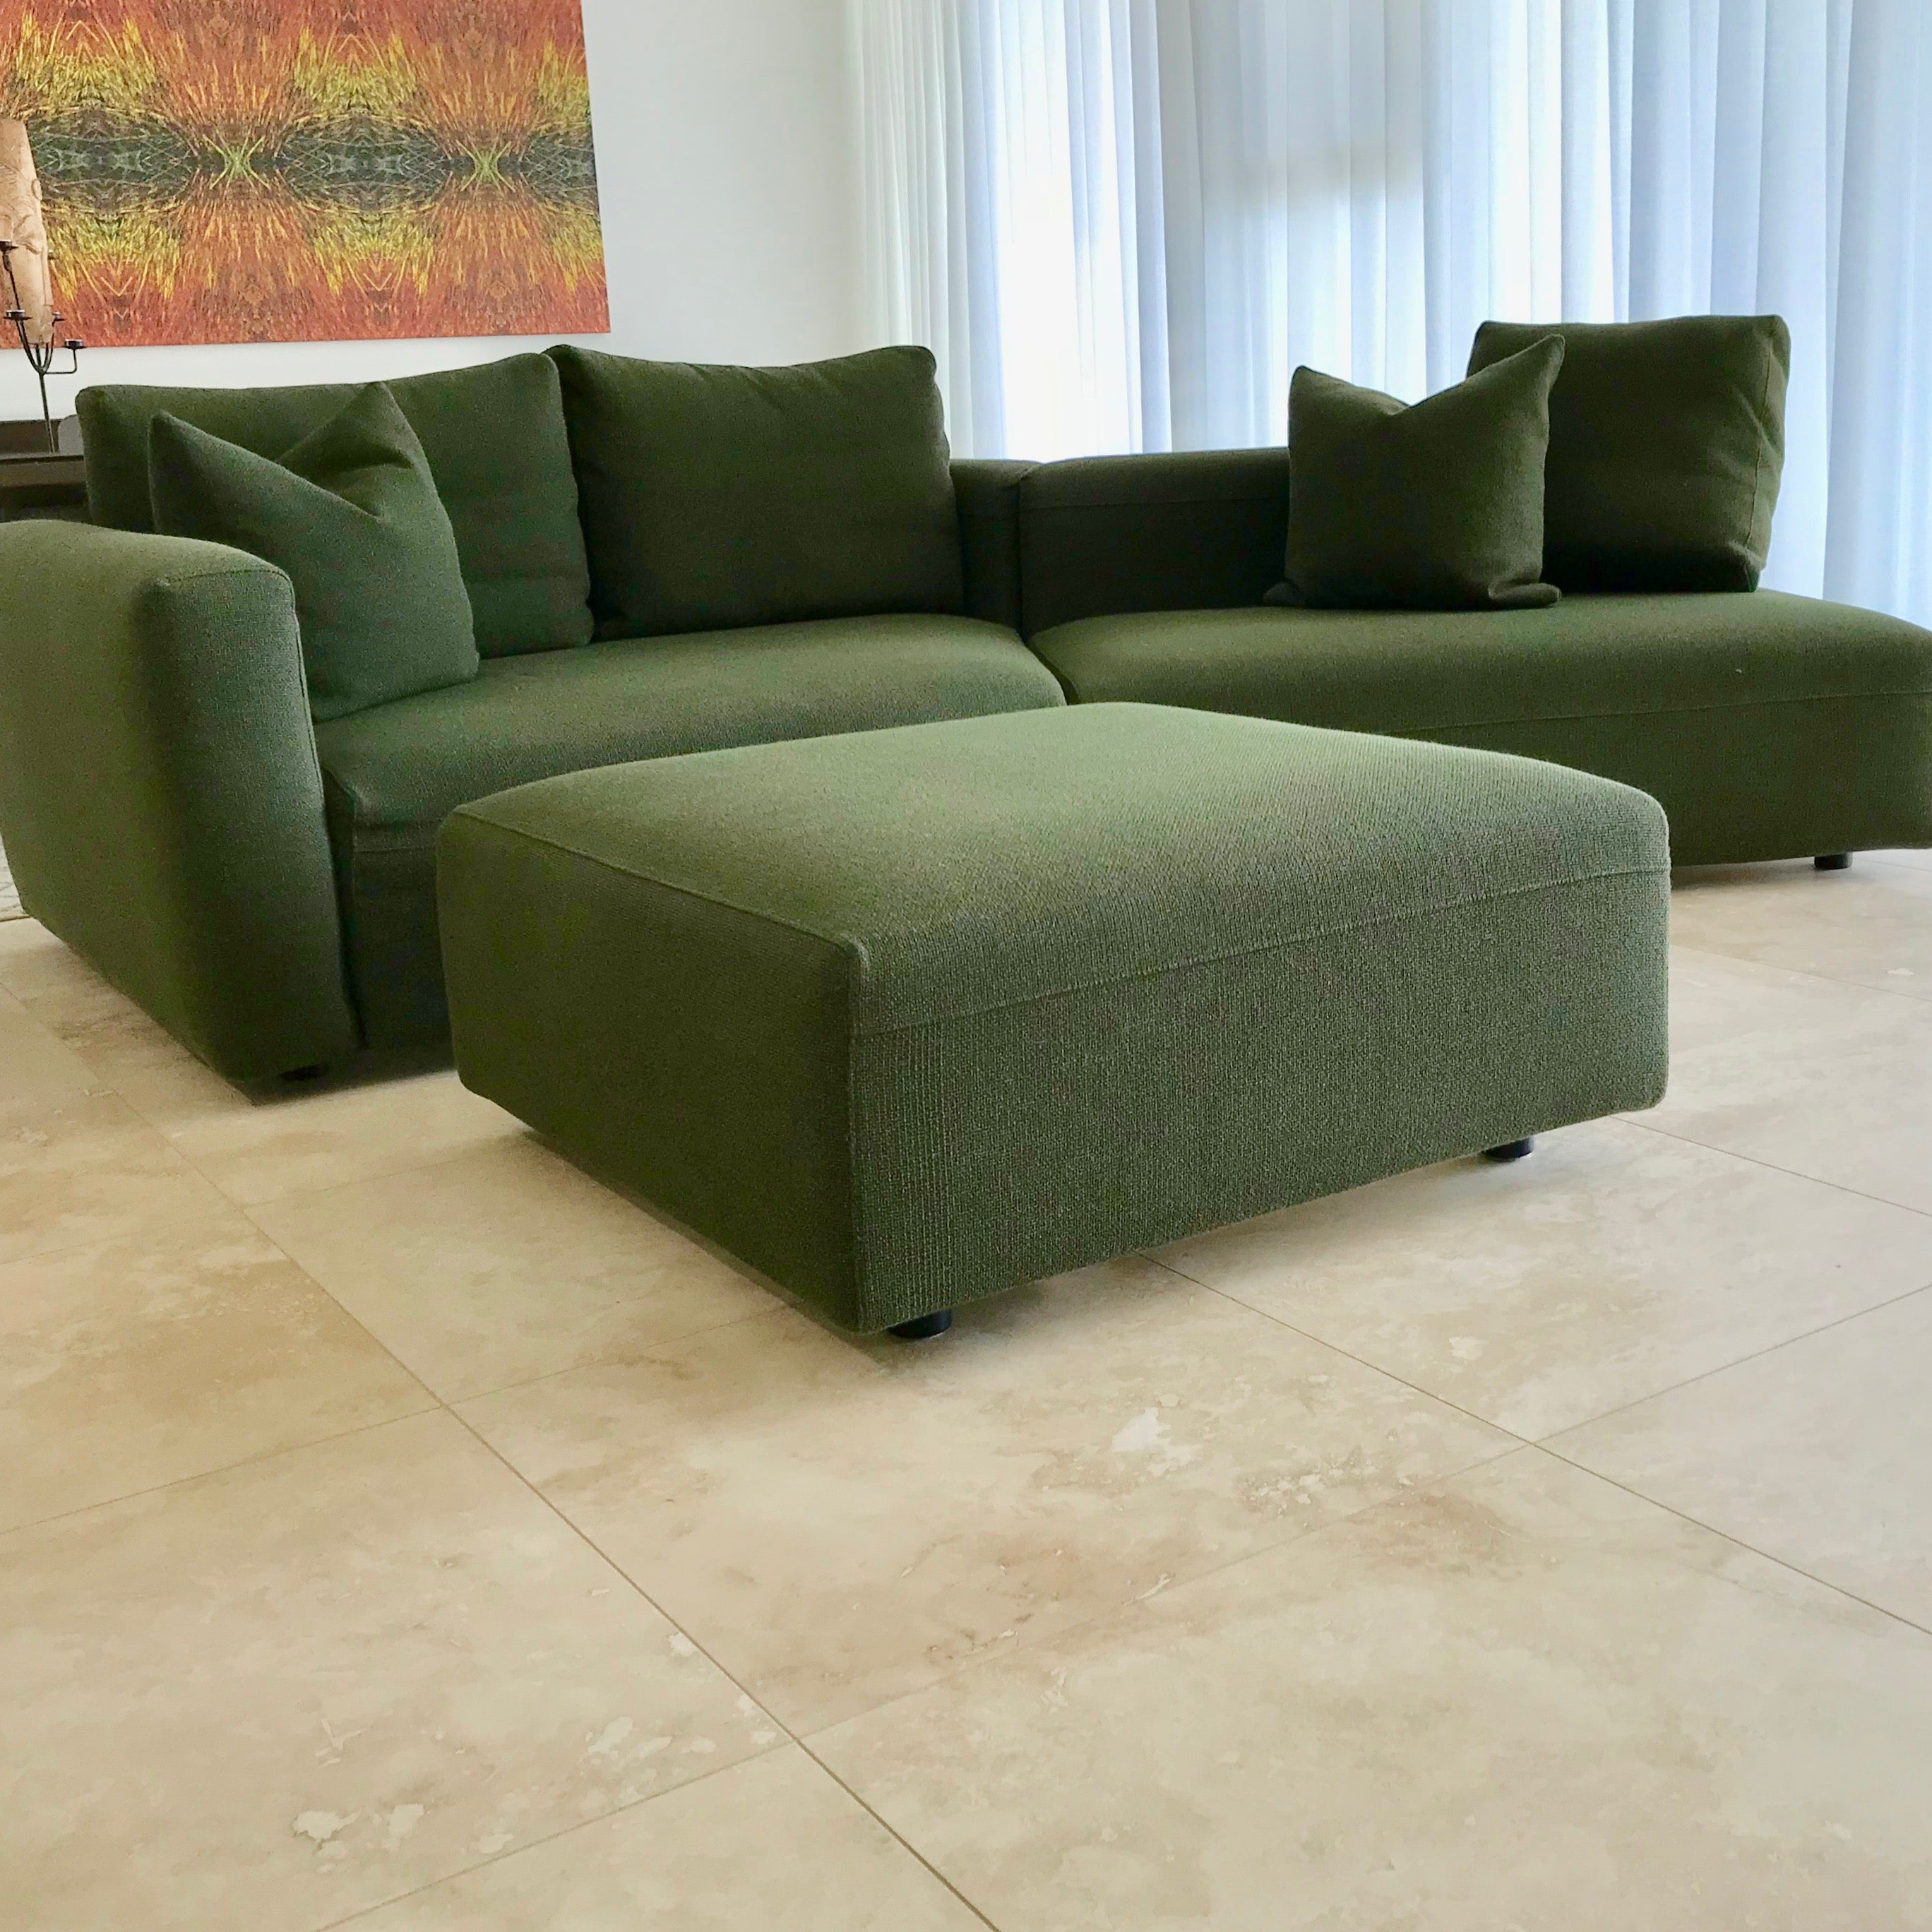 Party Sofa by Gabriele Rosa for Zanotta